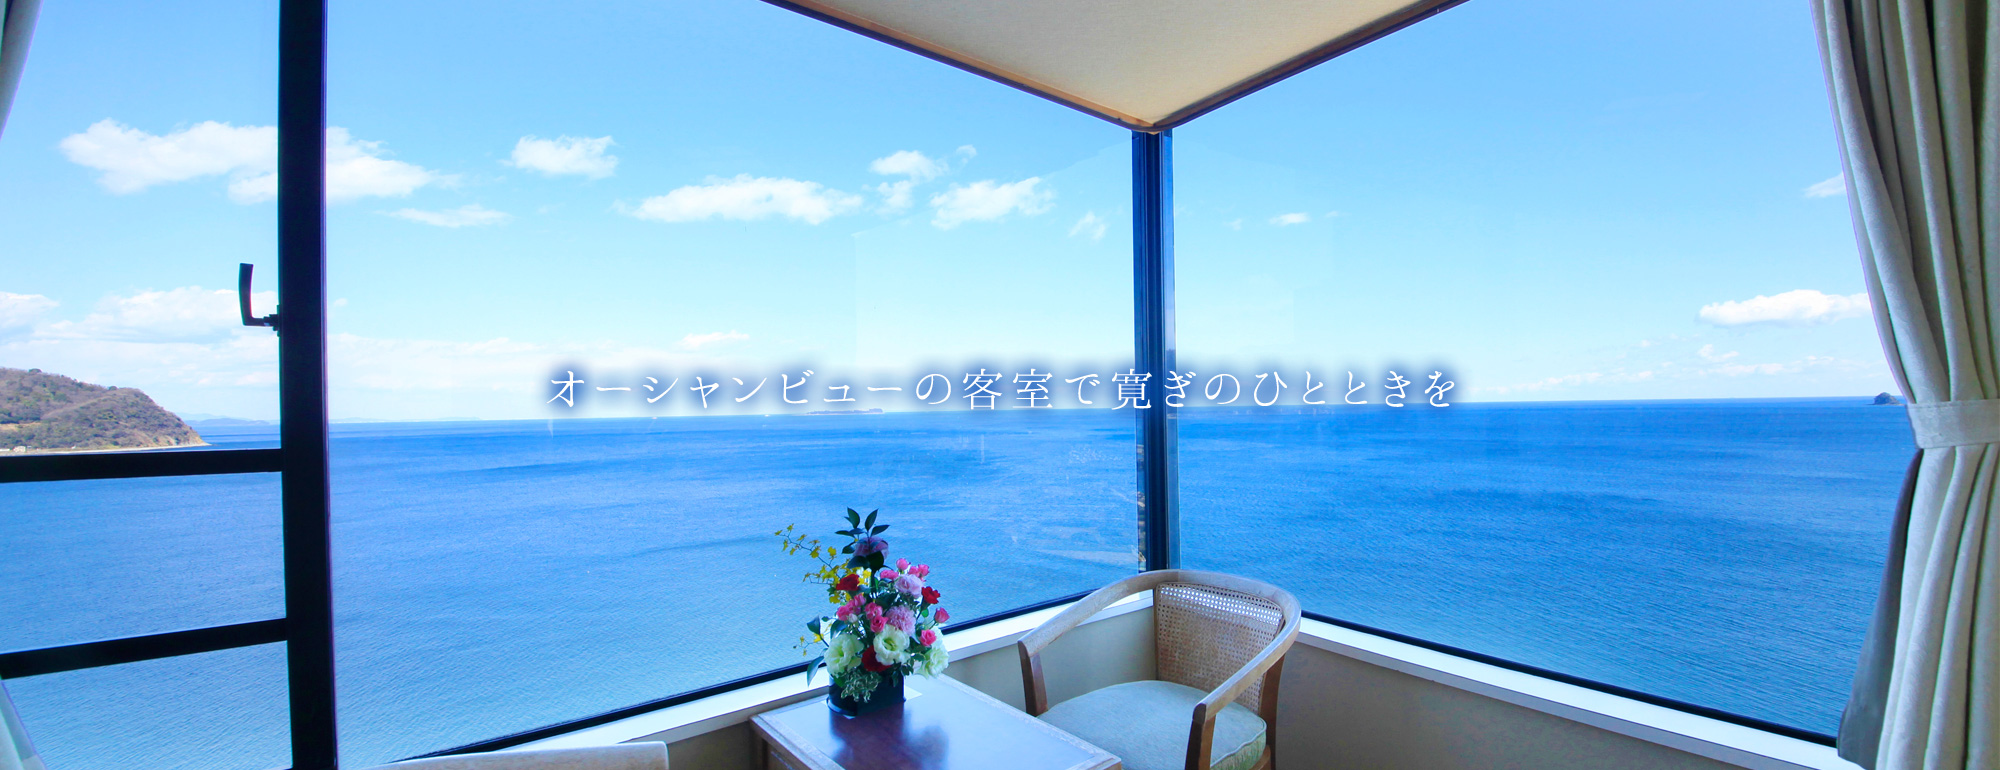 Relax in the ocean-view rooms